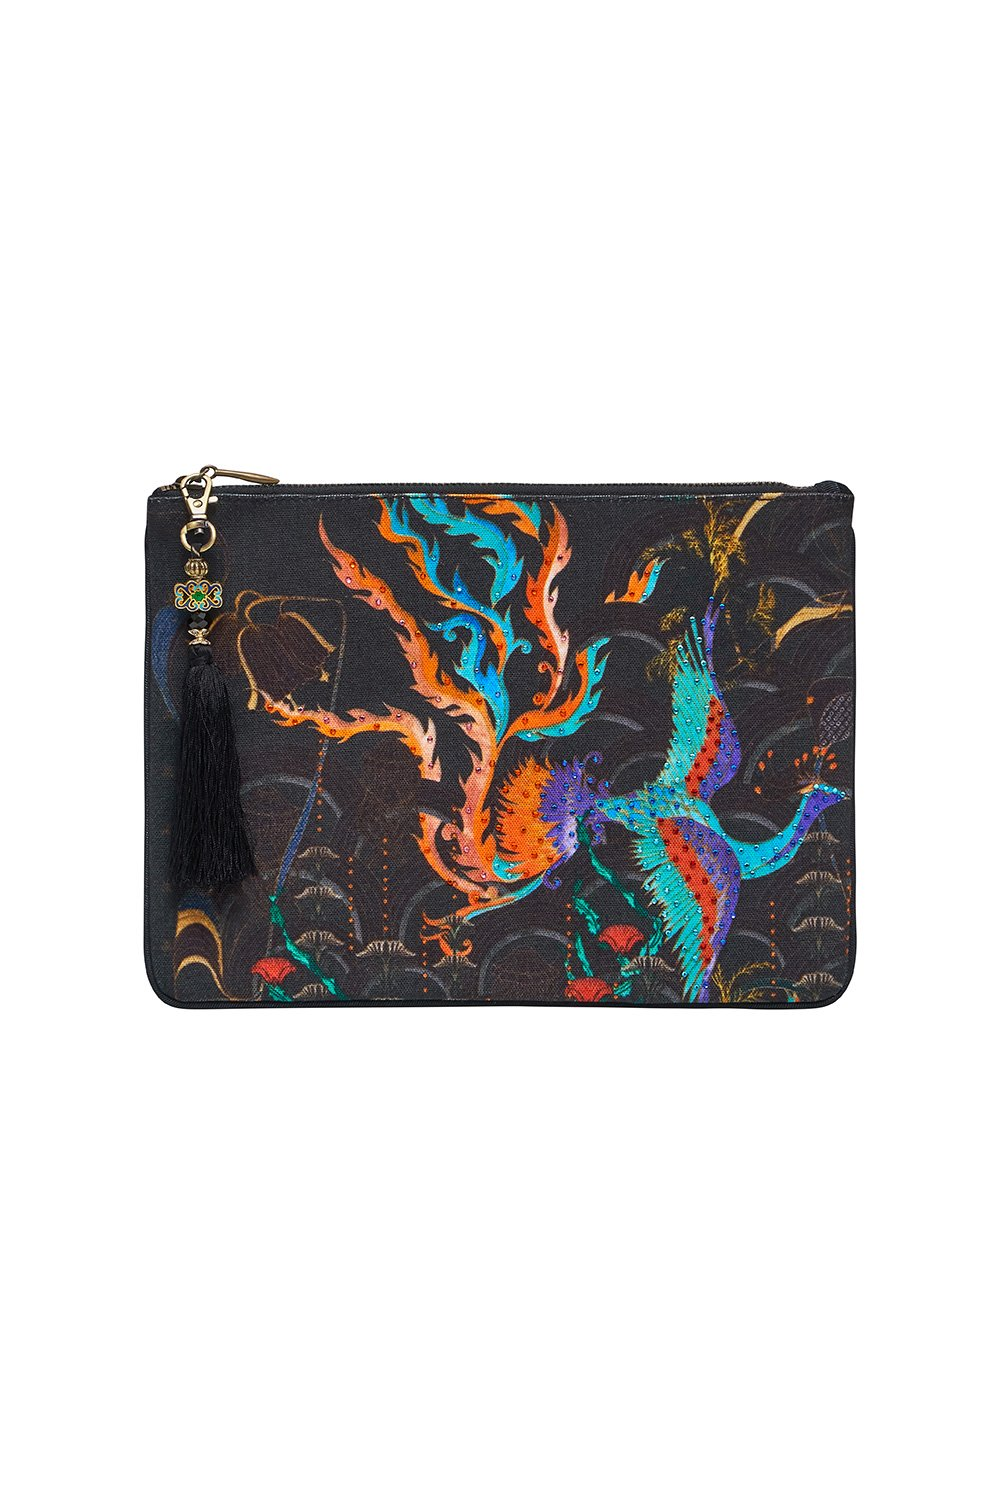 SMALL CANVAS CLUTCH WISE WINGS